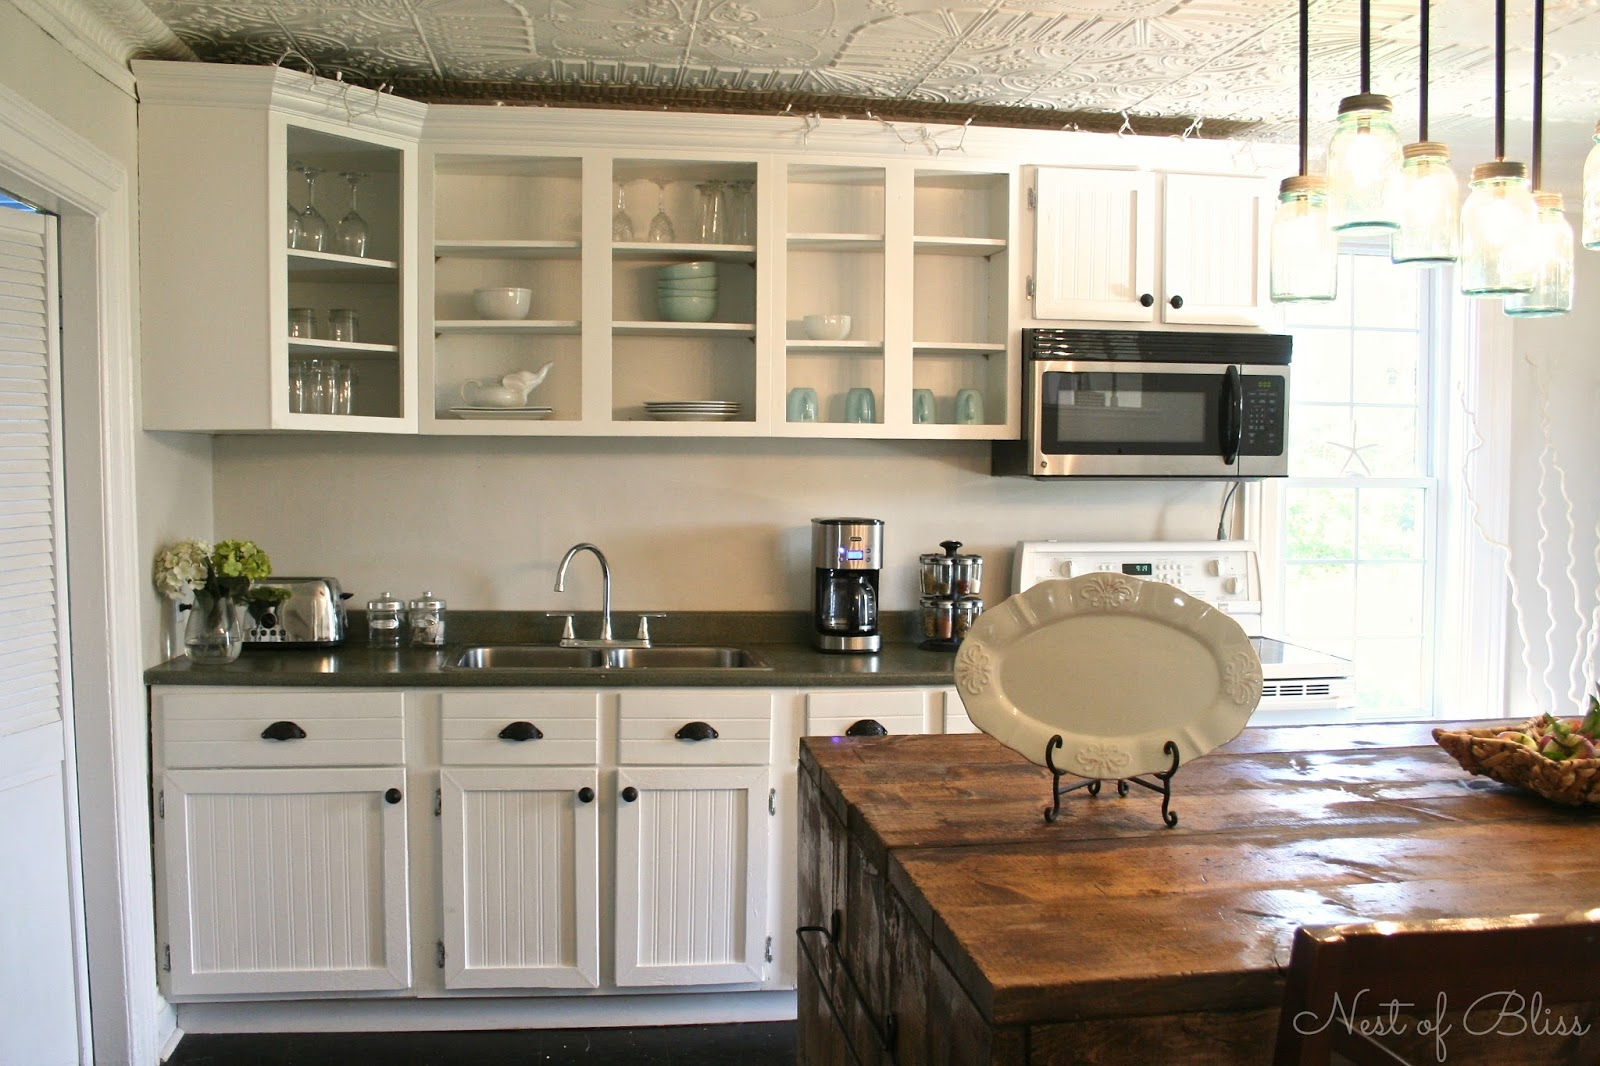 Country kitchens on a budget - 10 Diy Kitchen Cabinet Makeovers Before After Photos That Prove A Little Tlc Goes A Long Way